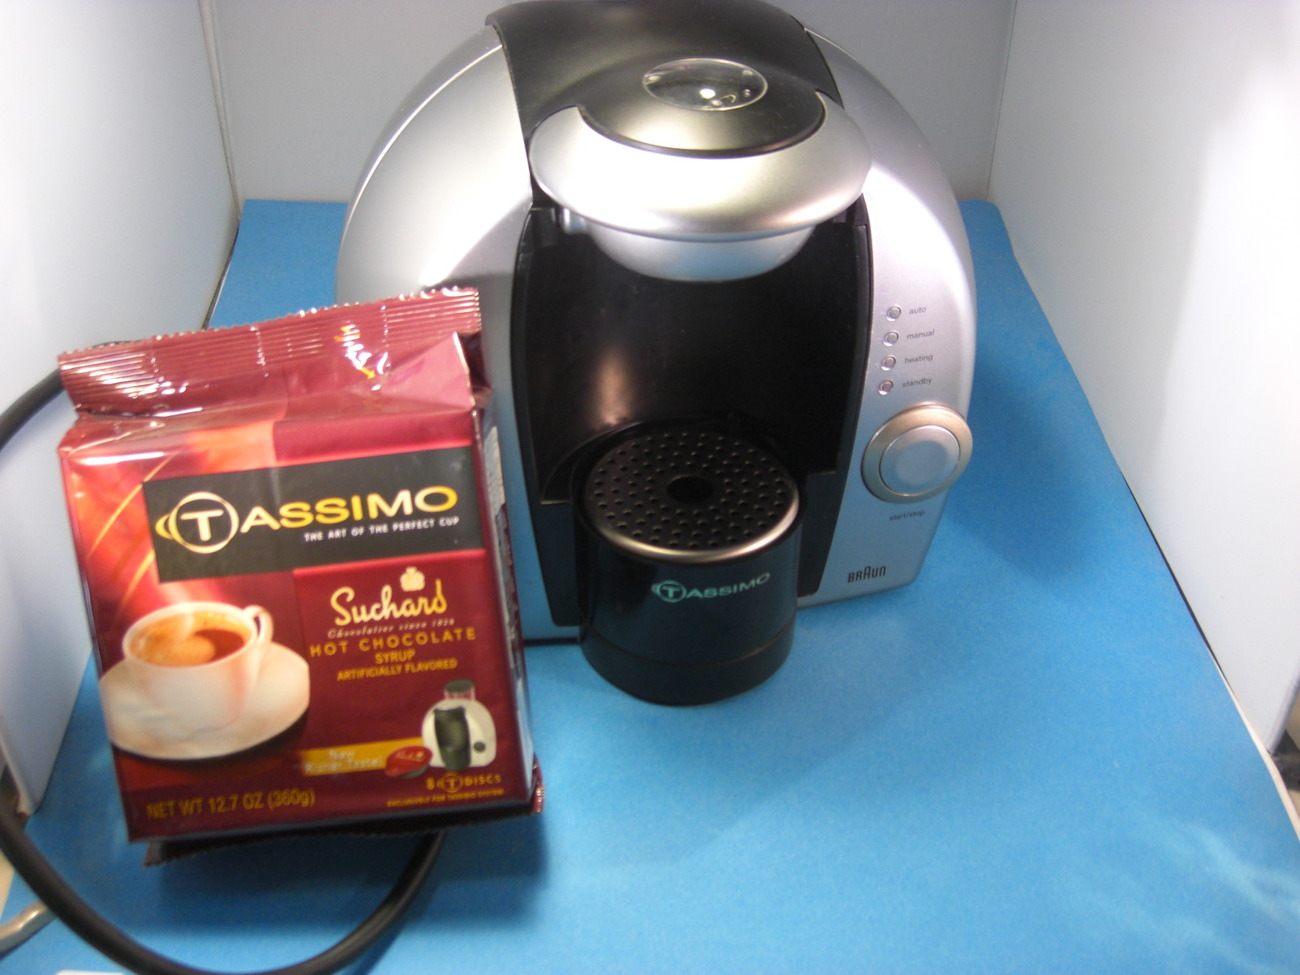 Bosch Tassimo Coffee Maker Models : Braun Tassimo One Cup Coffee Maker Model 3107 - Coffee Makers